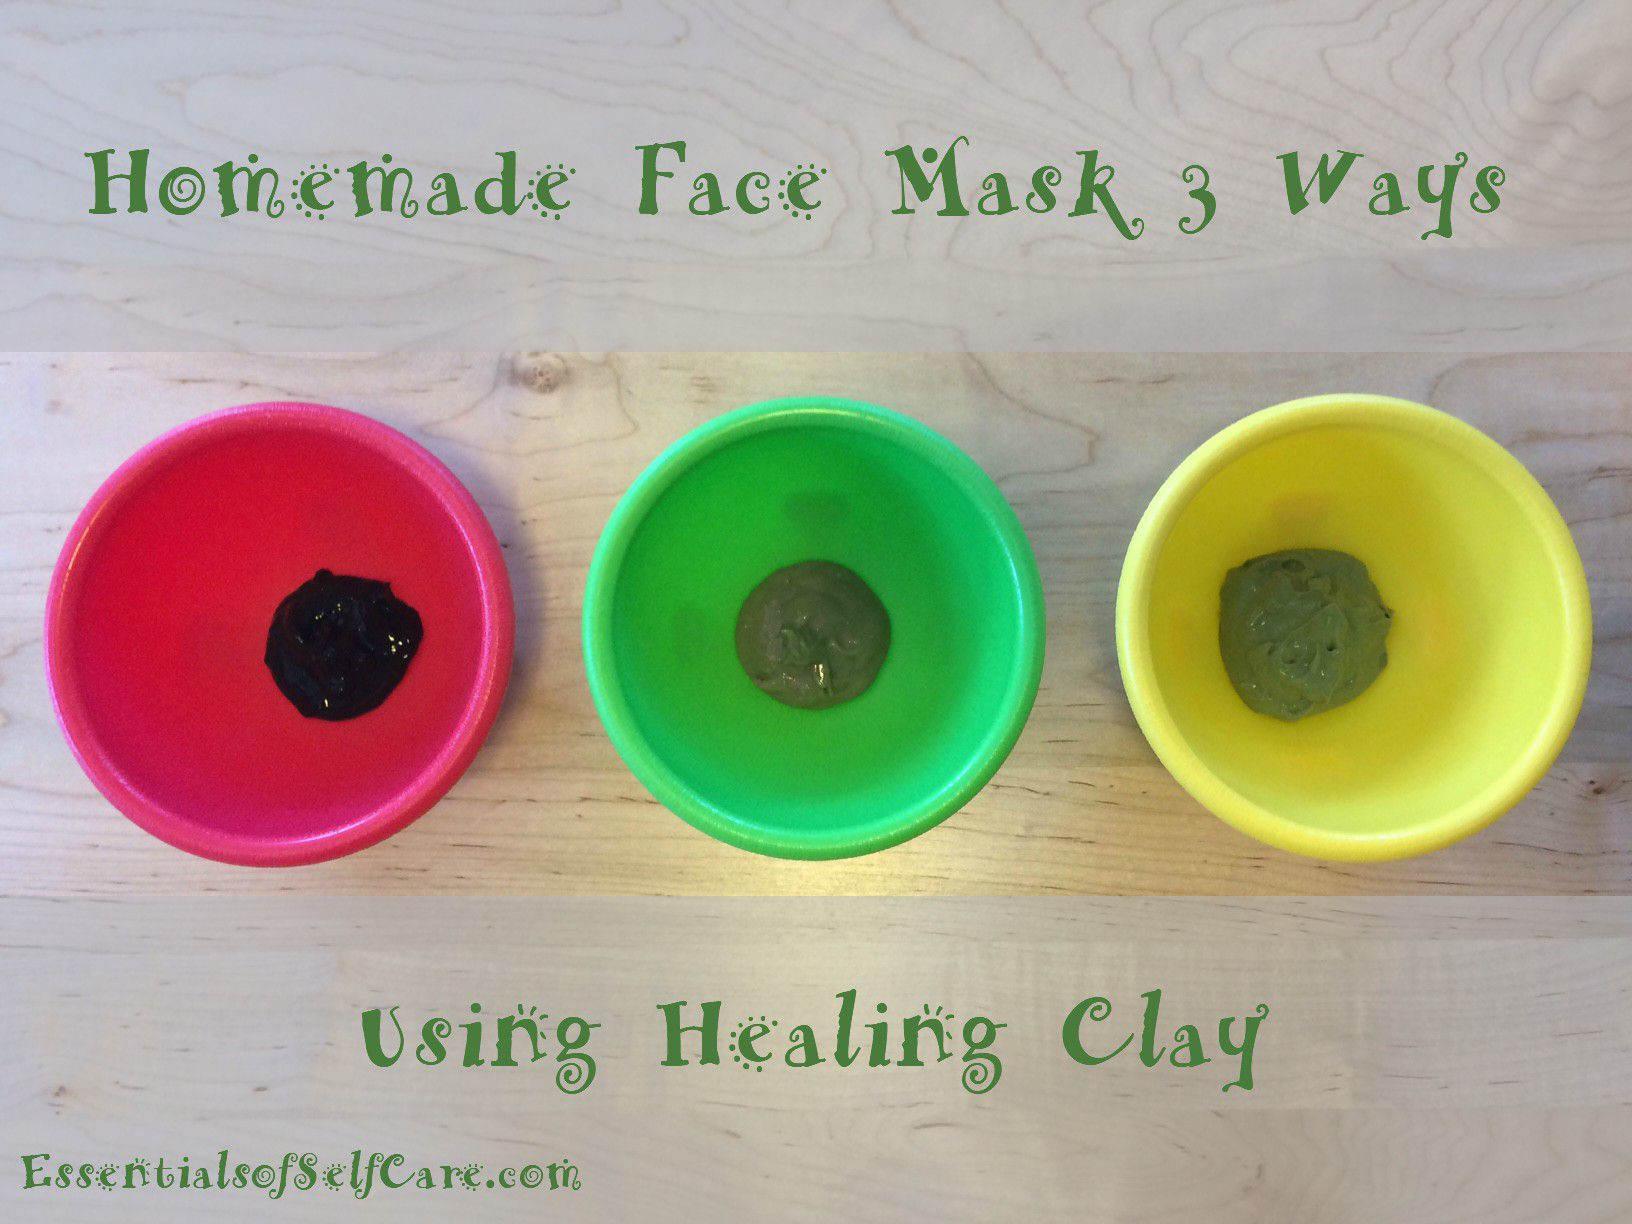 Homemade Face Mask Recipe 3 Ways (Using Healing Clay)